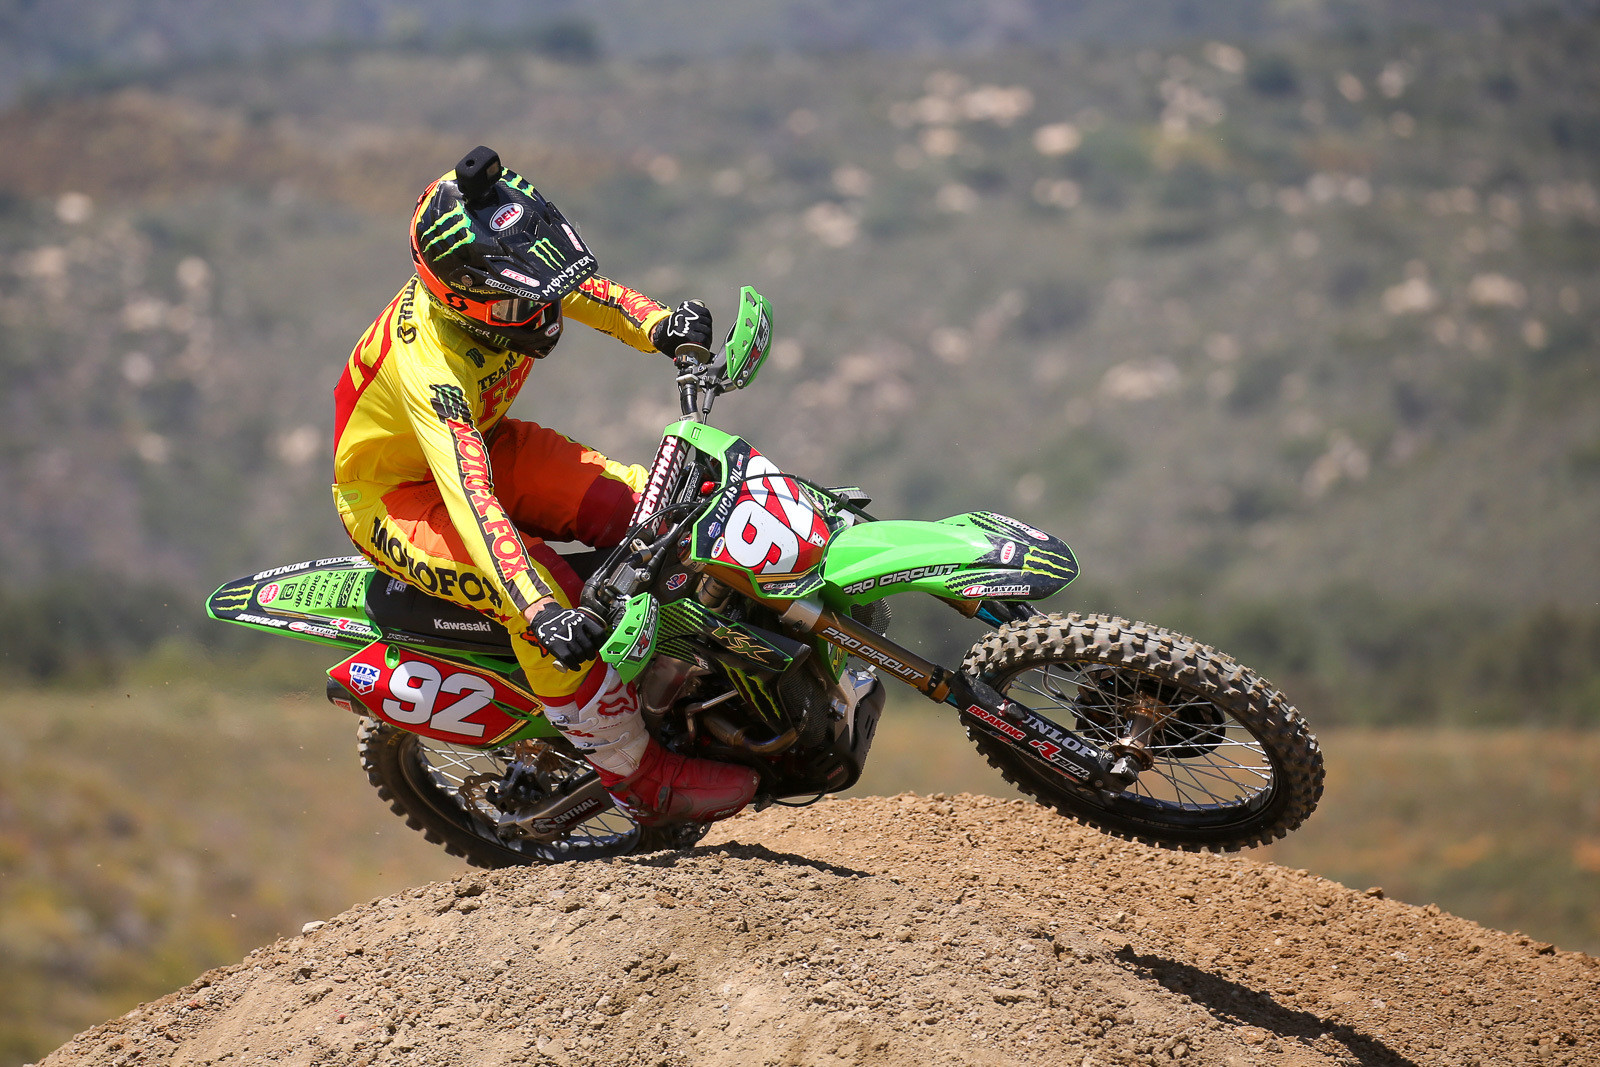 Adam Cianciarulo in the new gear.